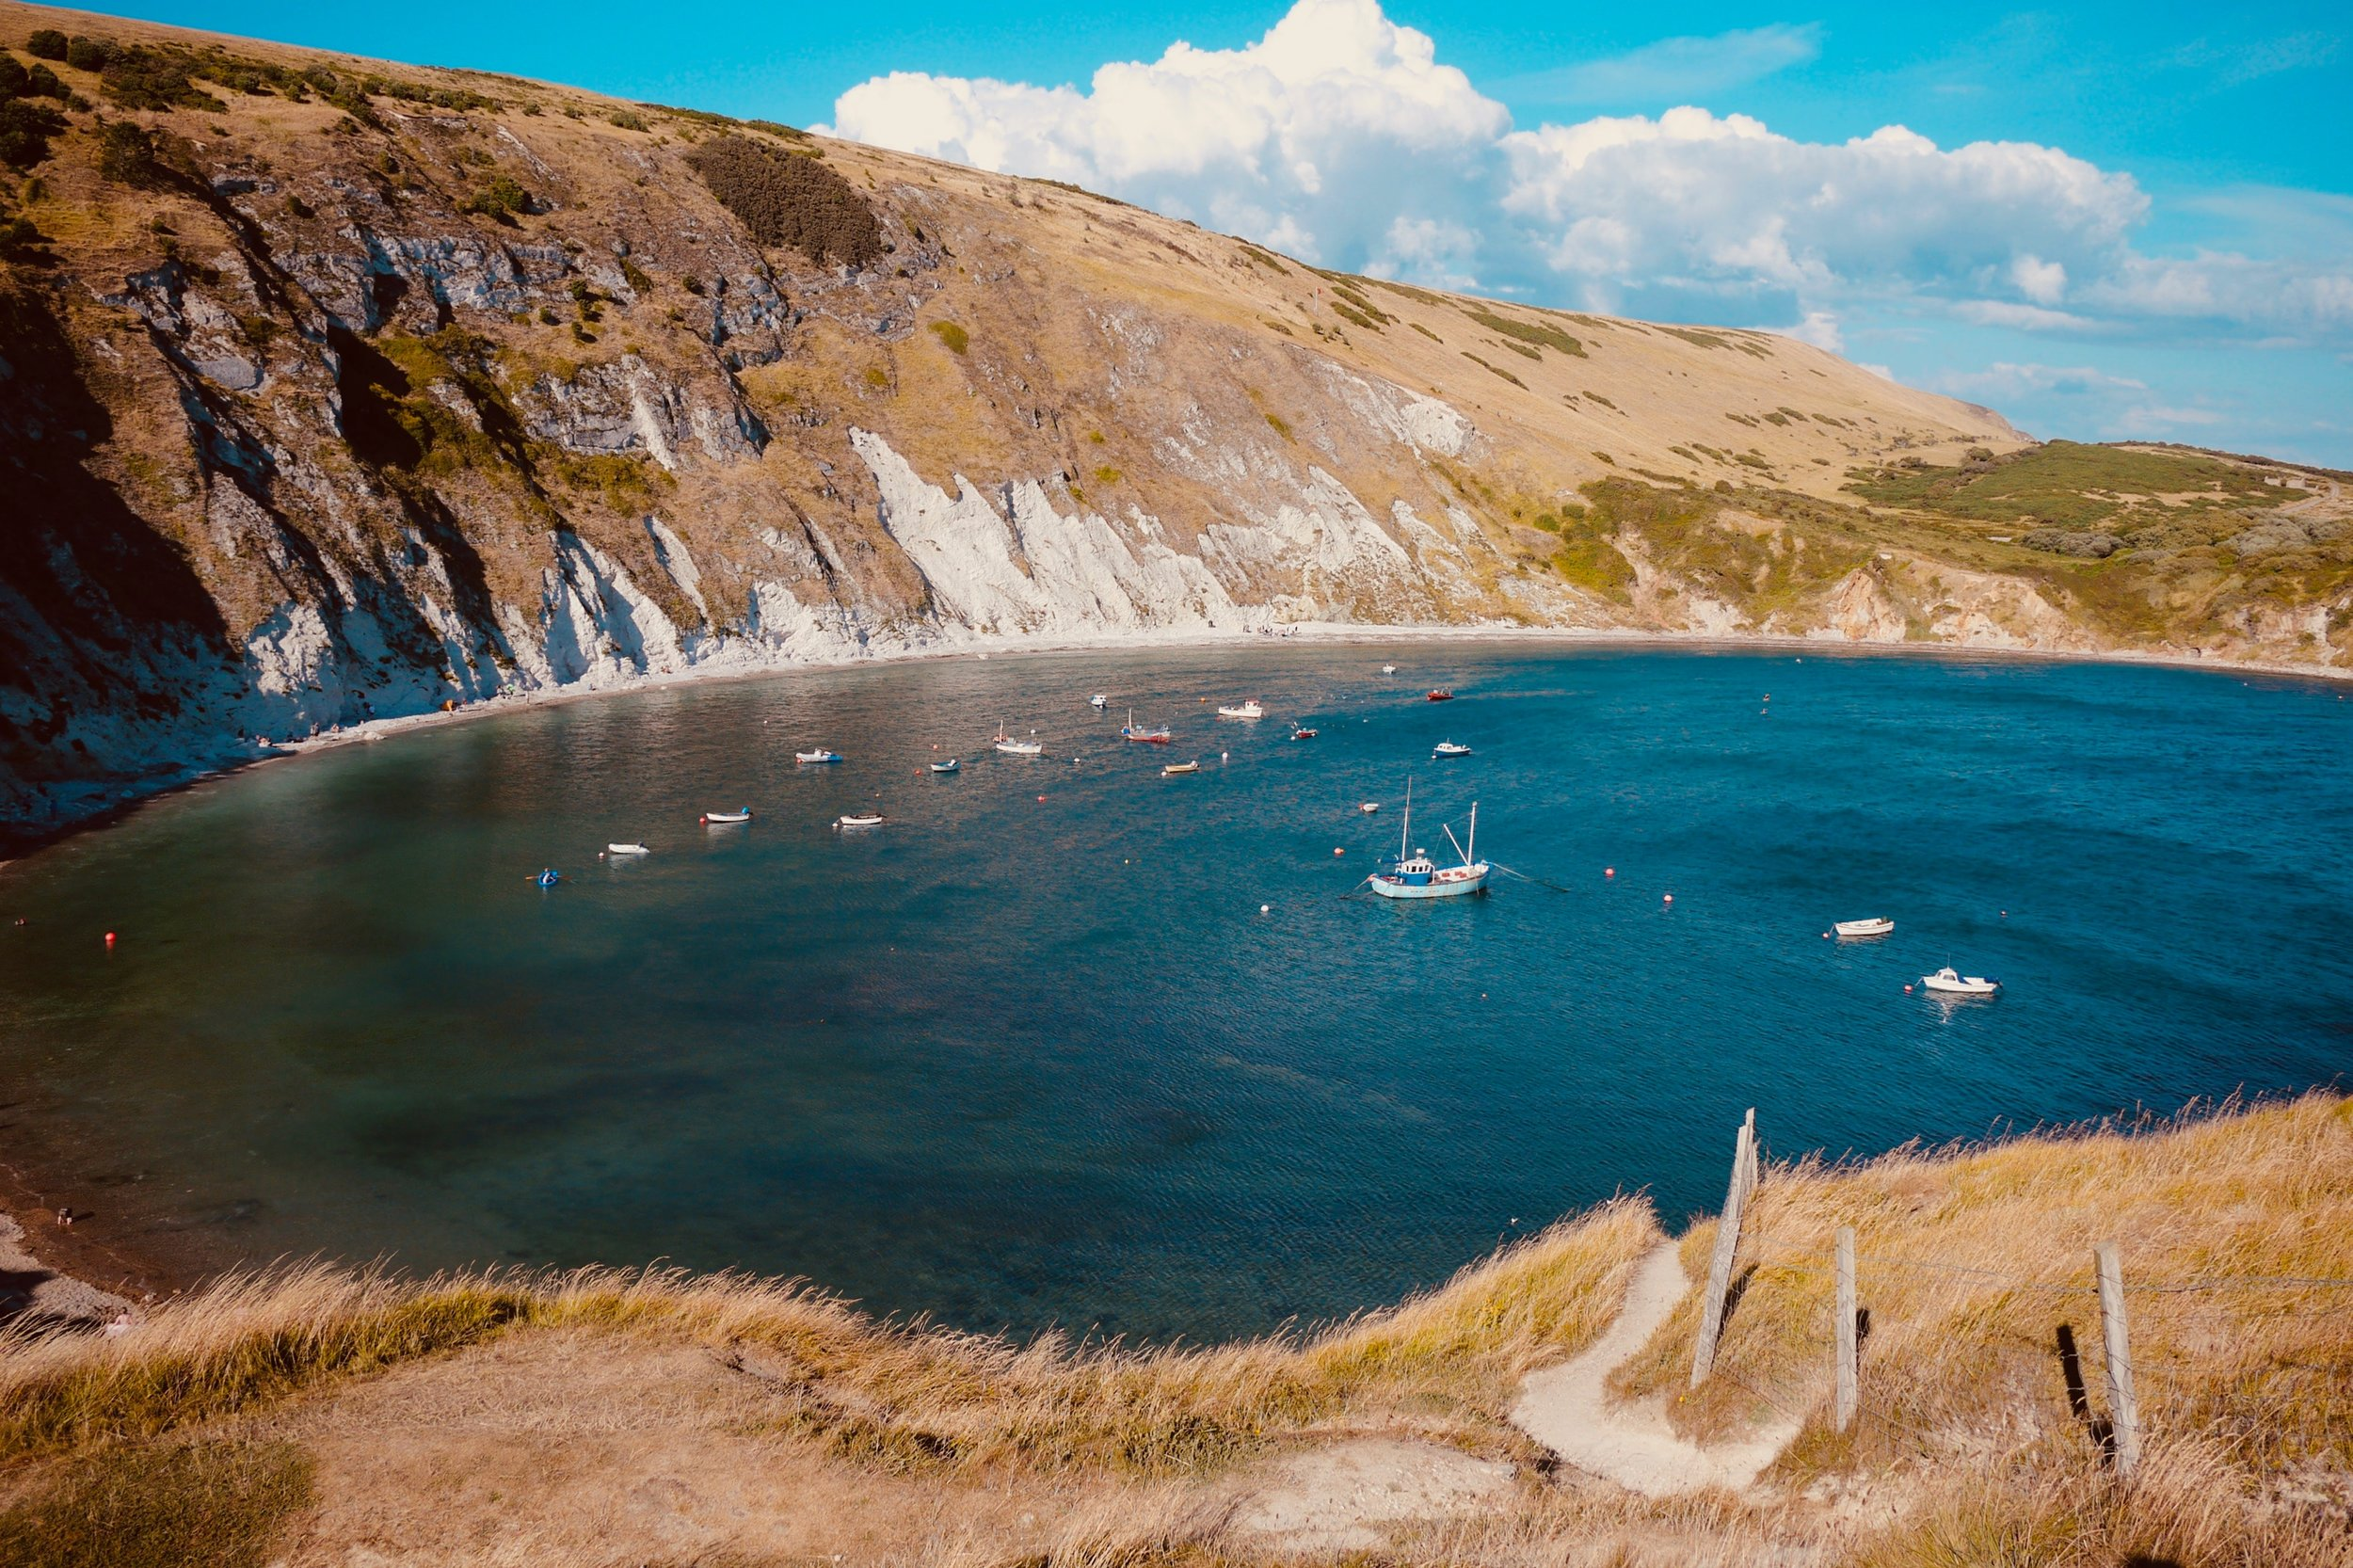 See this beauty spot at Lulworth cove by sea kayak